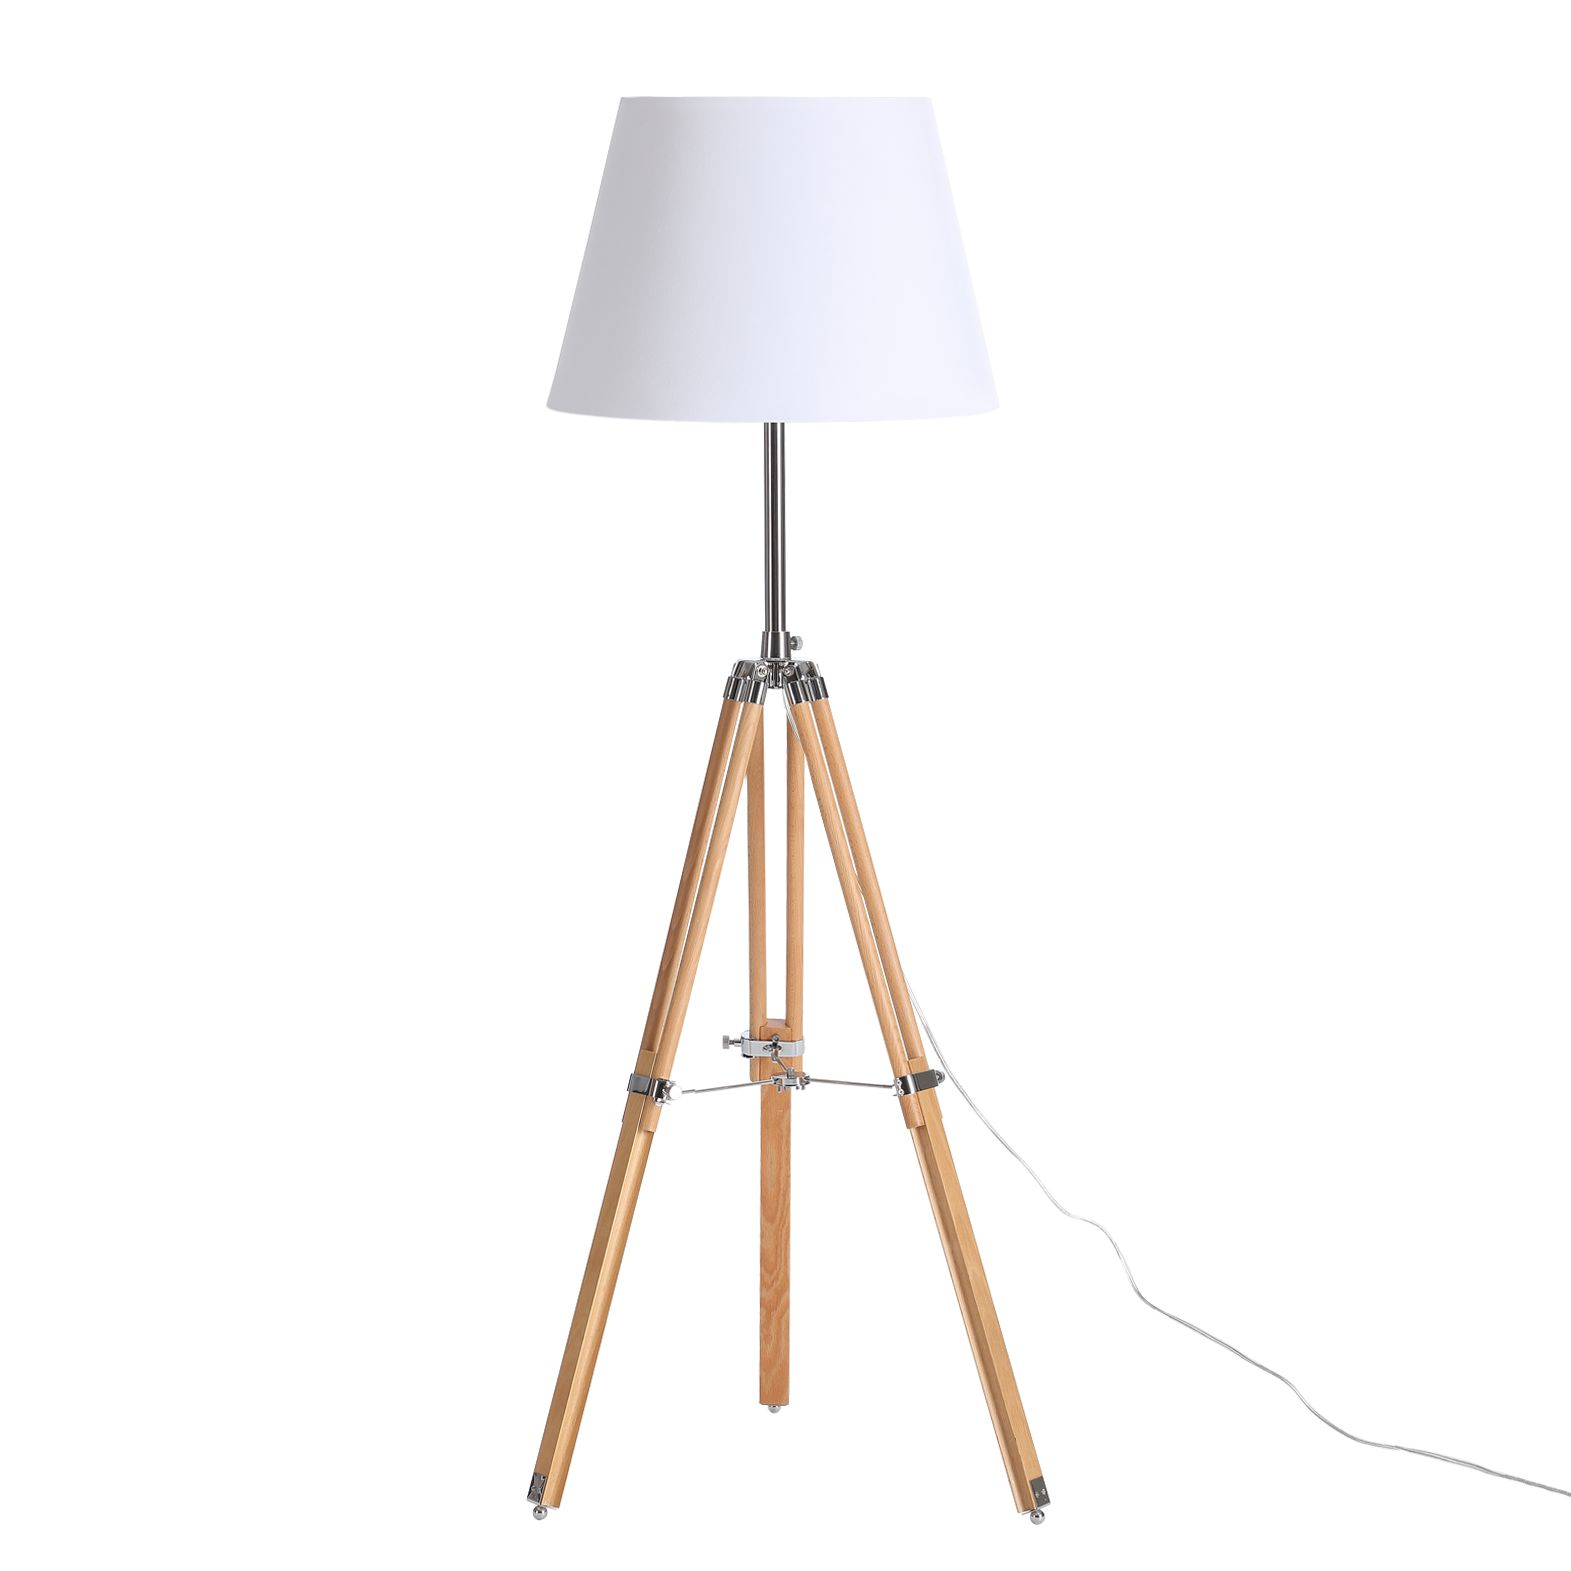 EEK A++, Lampadaire Trylith - Blanc 1 ampoule, Loistaa